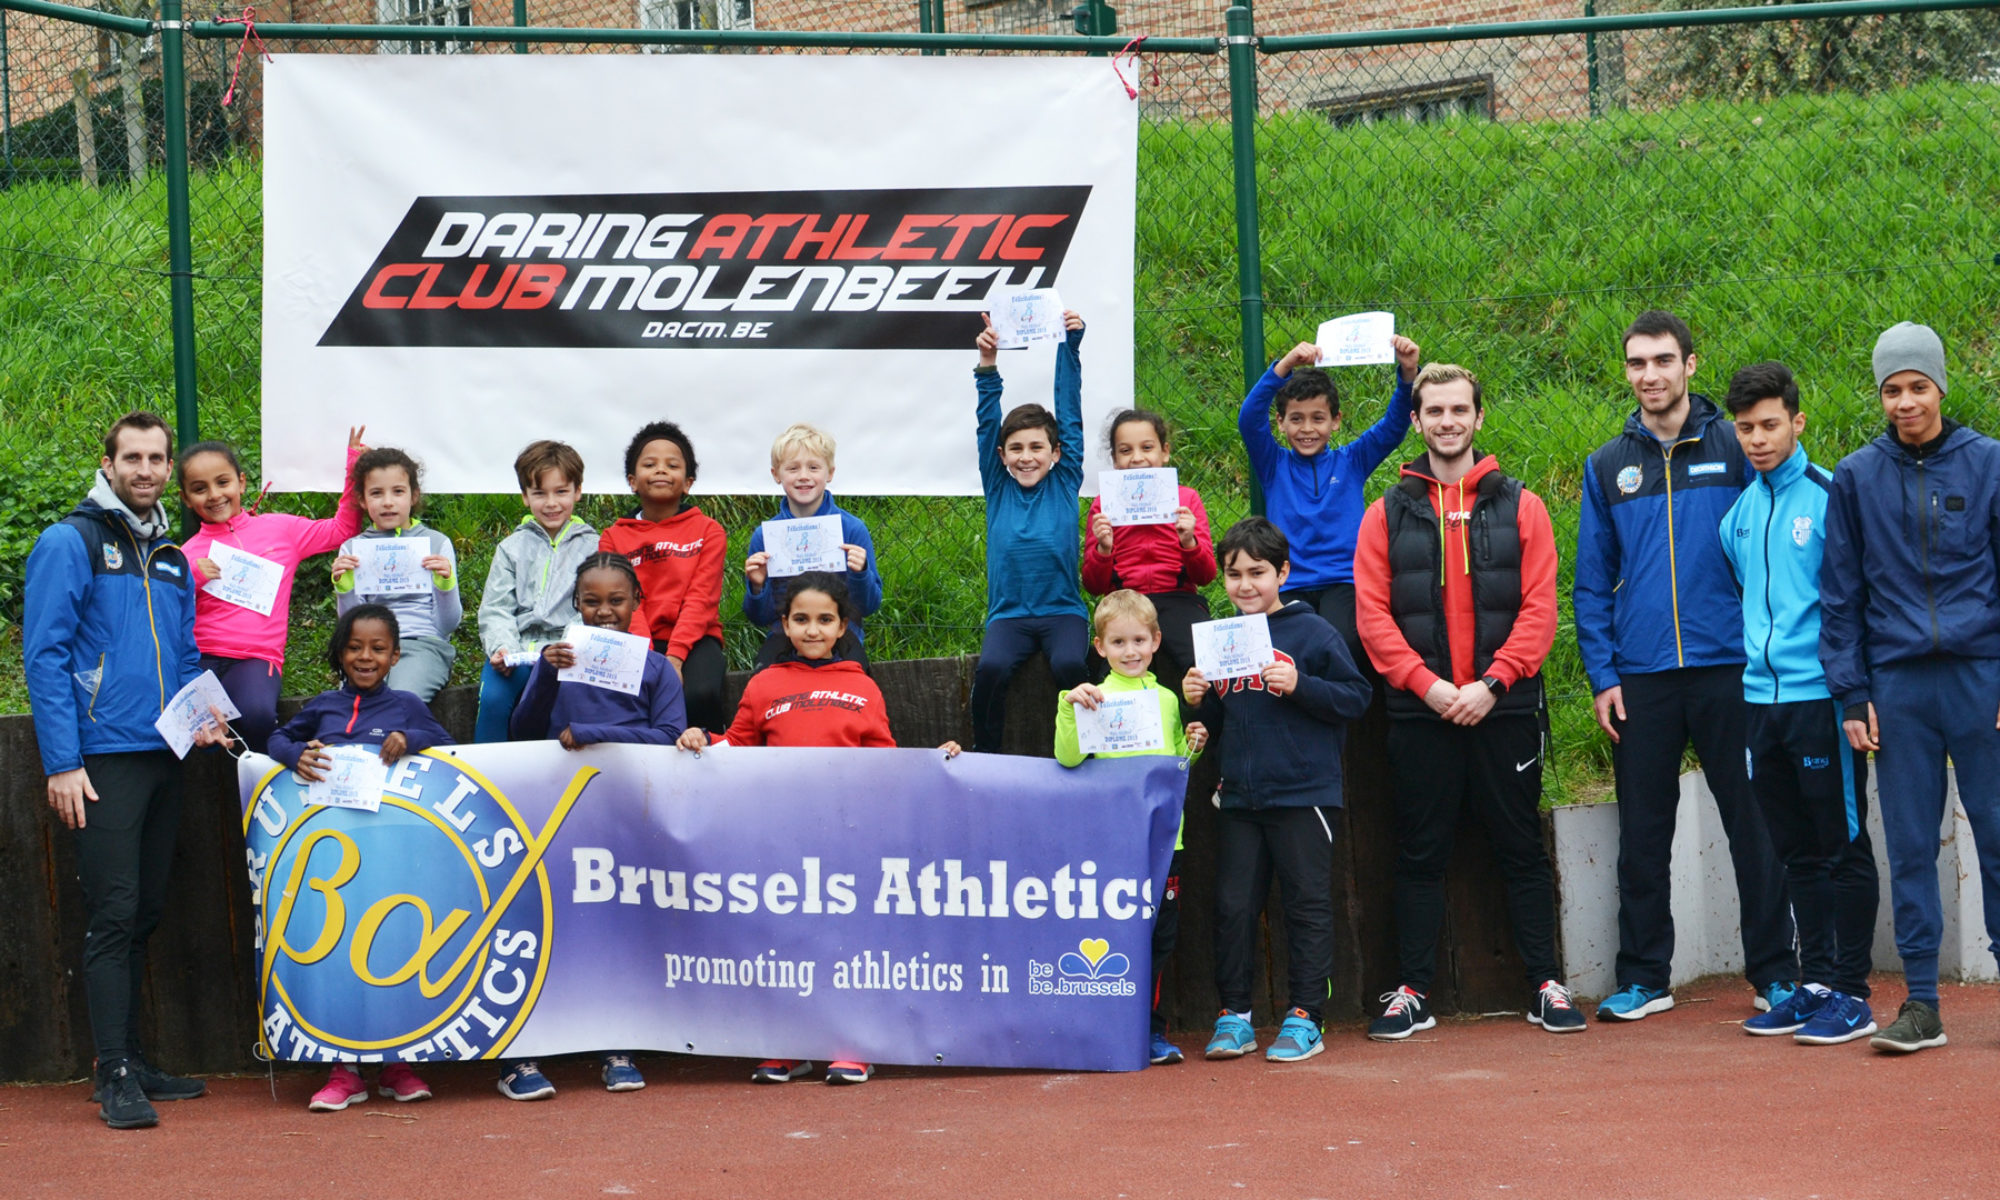 Daring Athletic Club Molenbeek